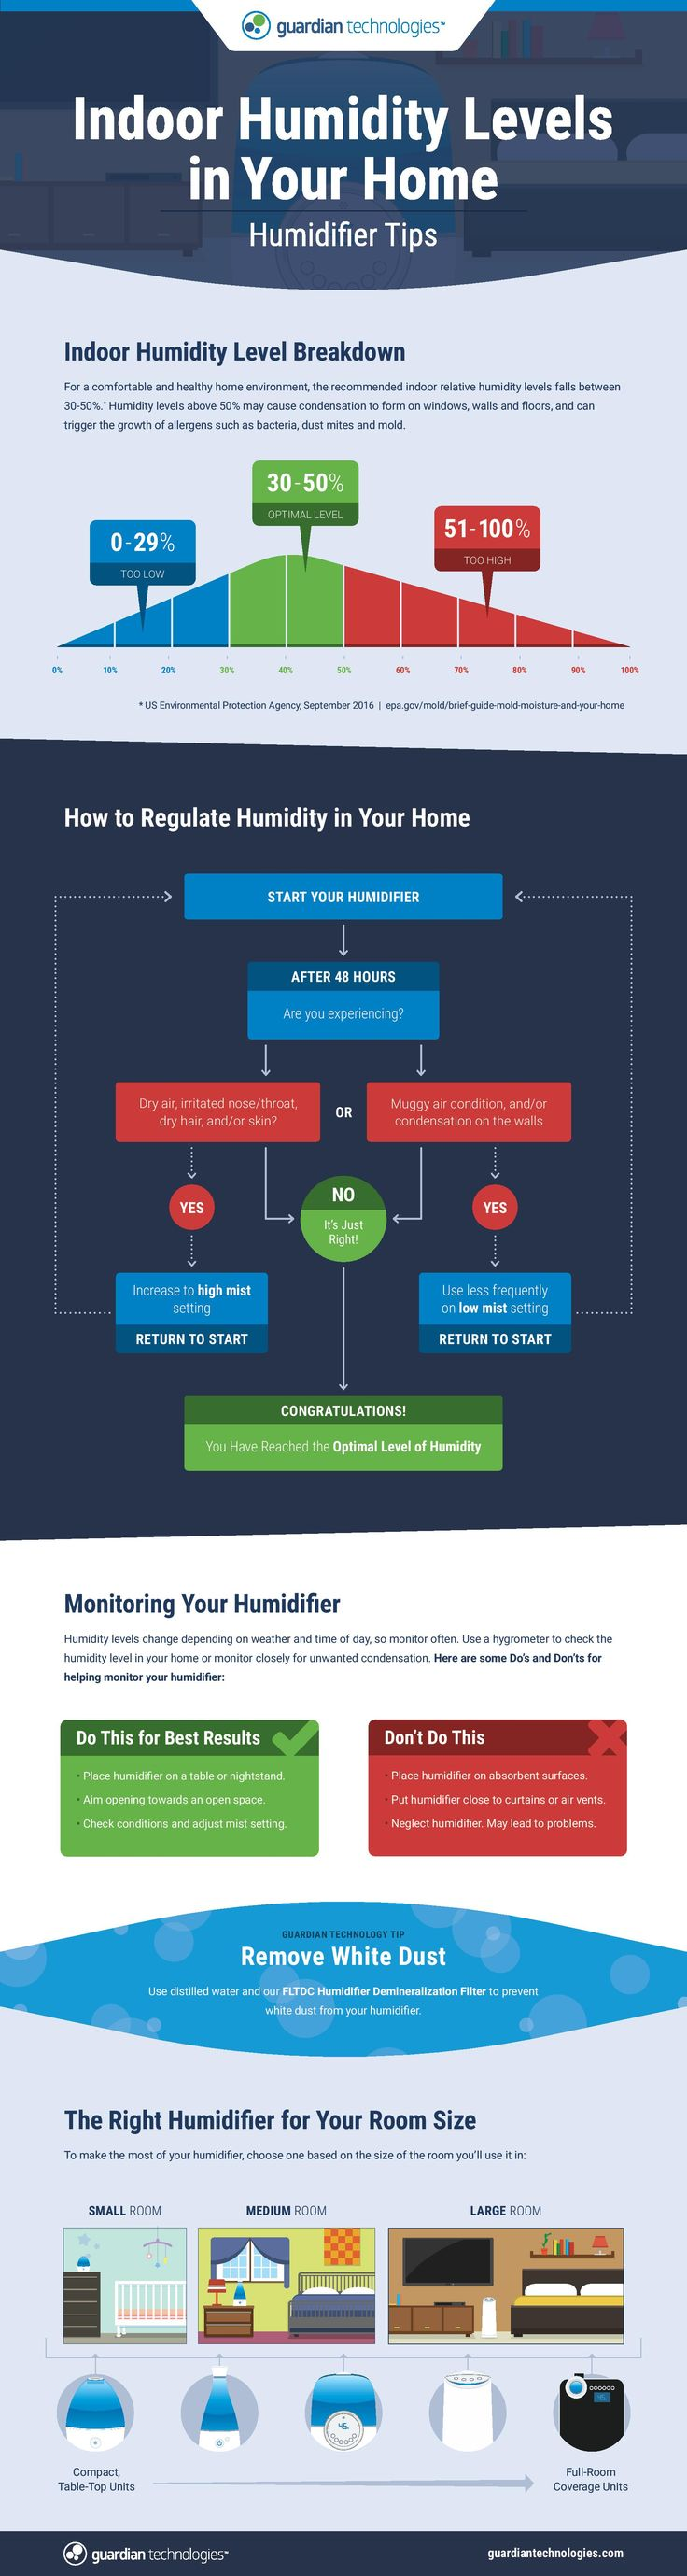 Indoor Humidity Levels in Your Home: Humidifier Tips #infographic